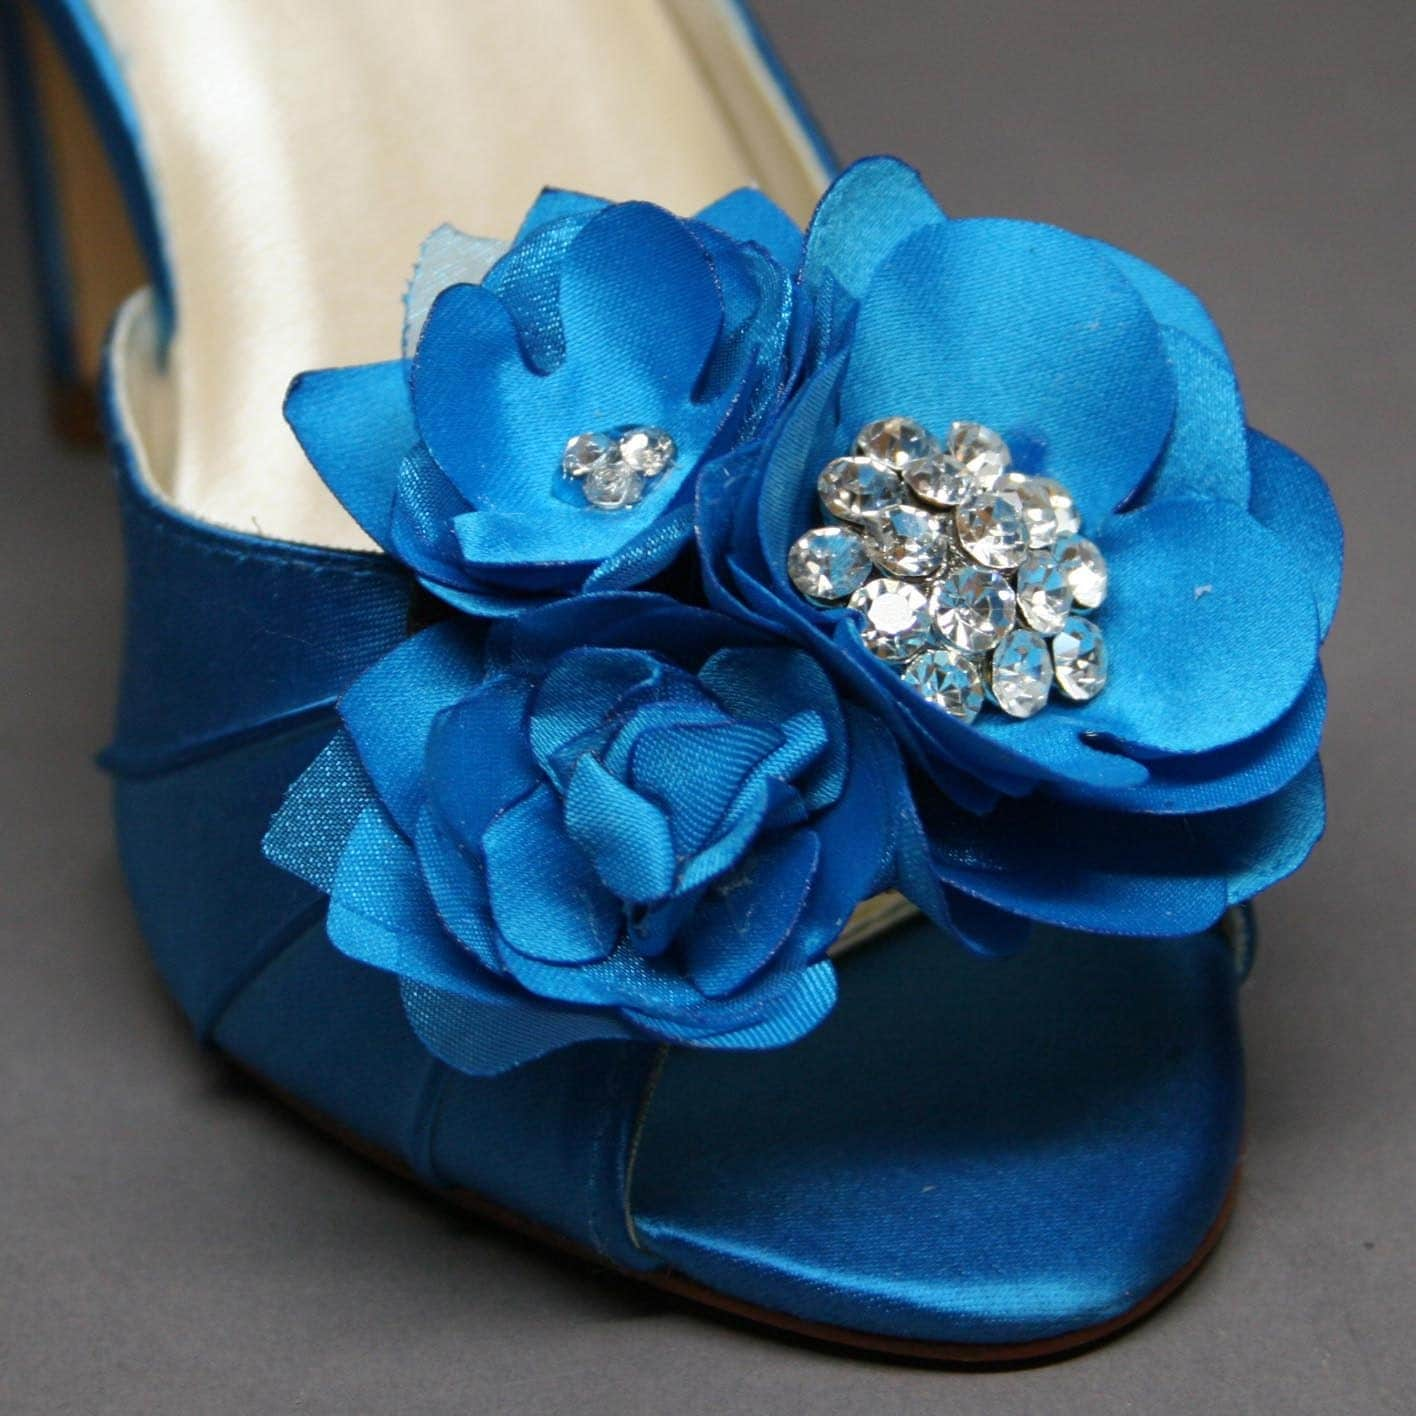 SAMPLE SALE Blue Wedding Shoes Turquoise Peeptoe Heels With